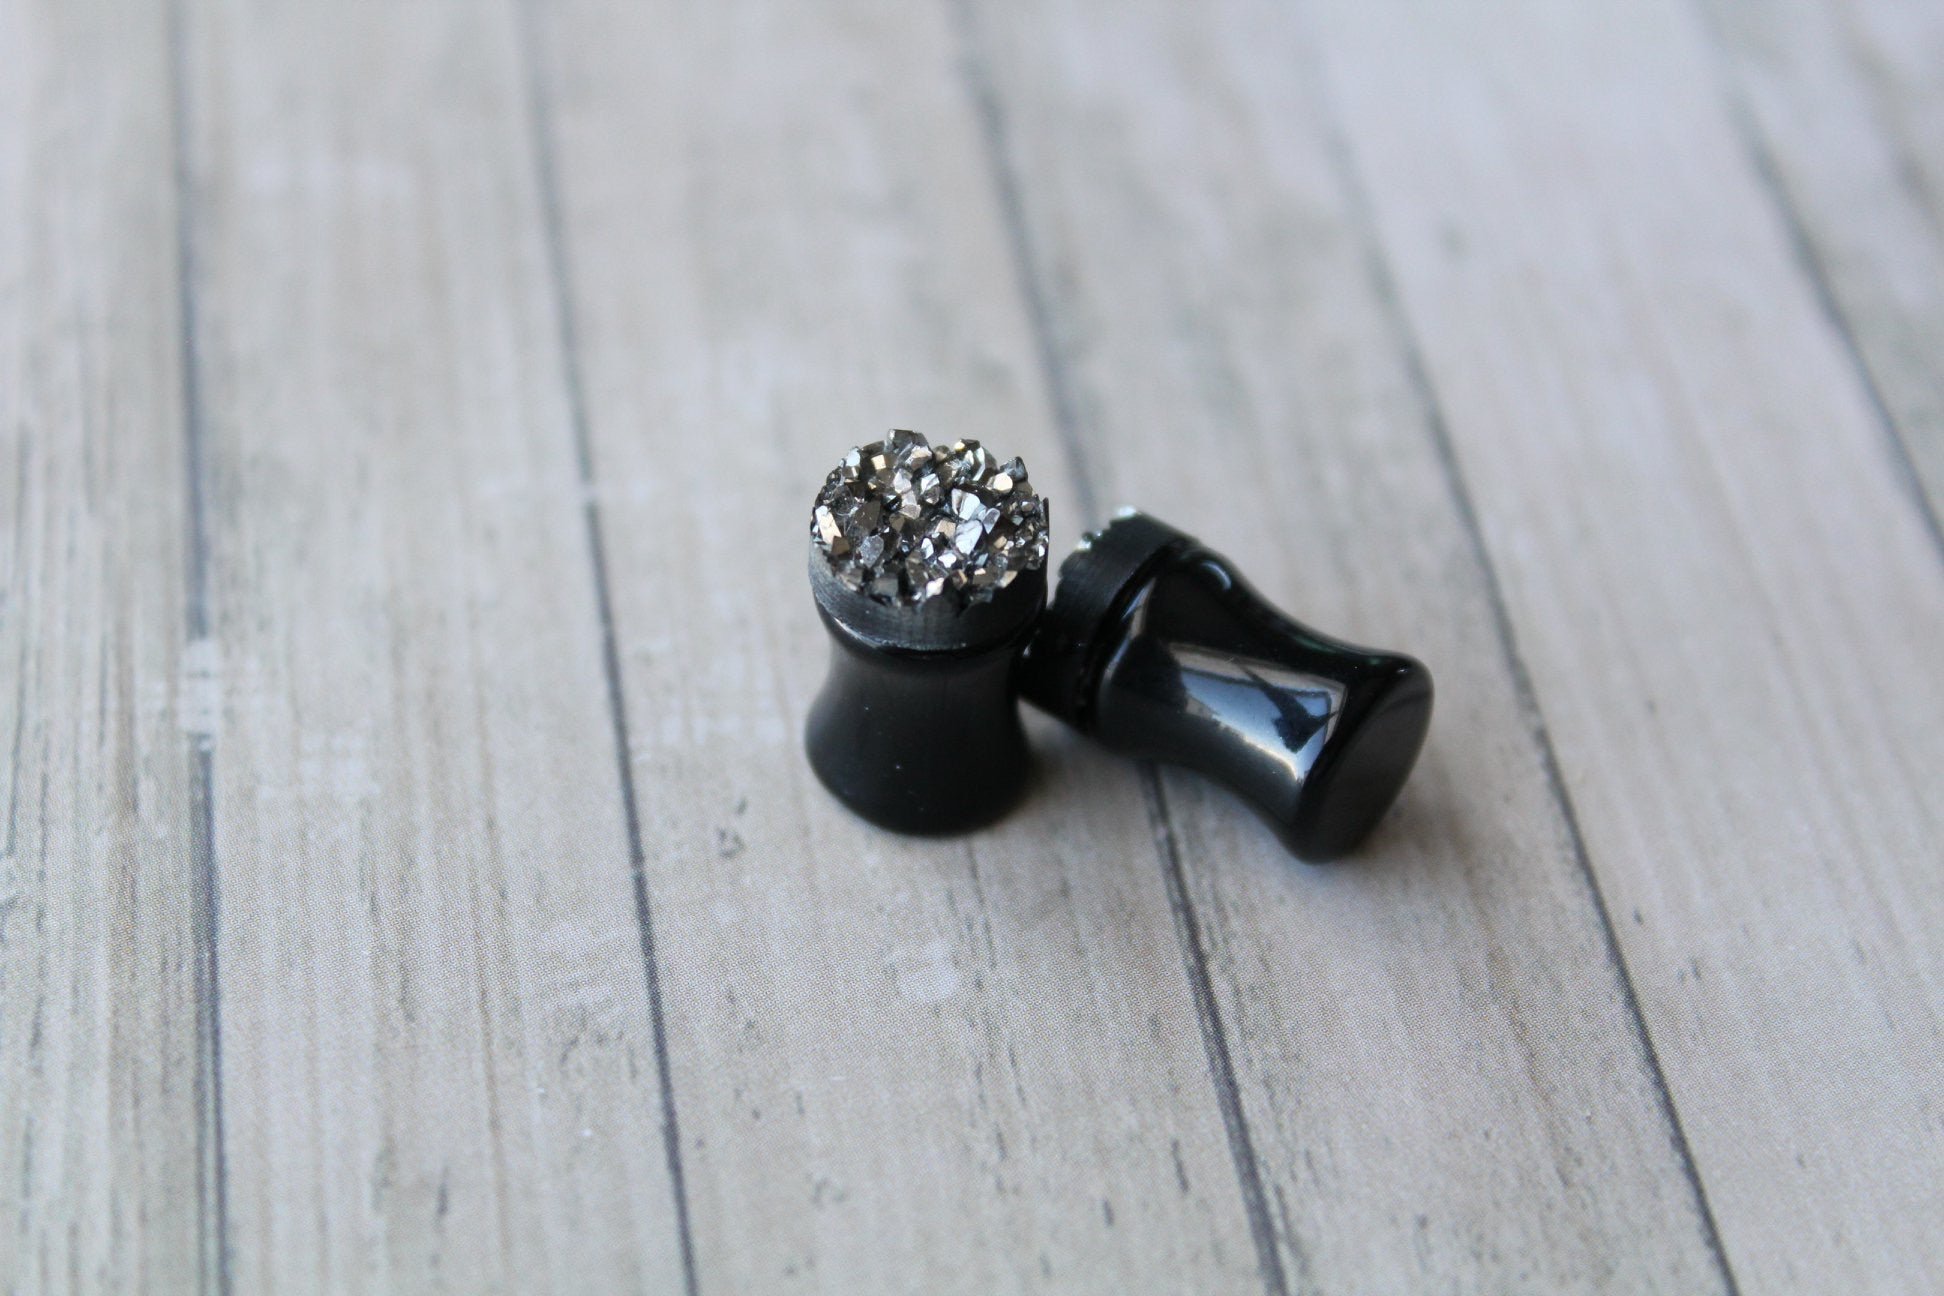 0G (8mm) Acrylic Plugs